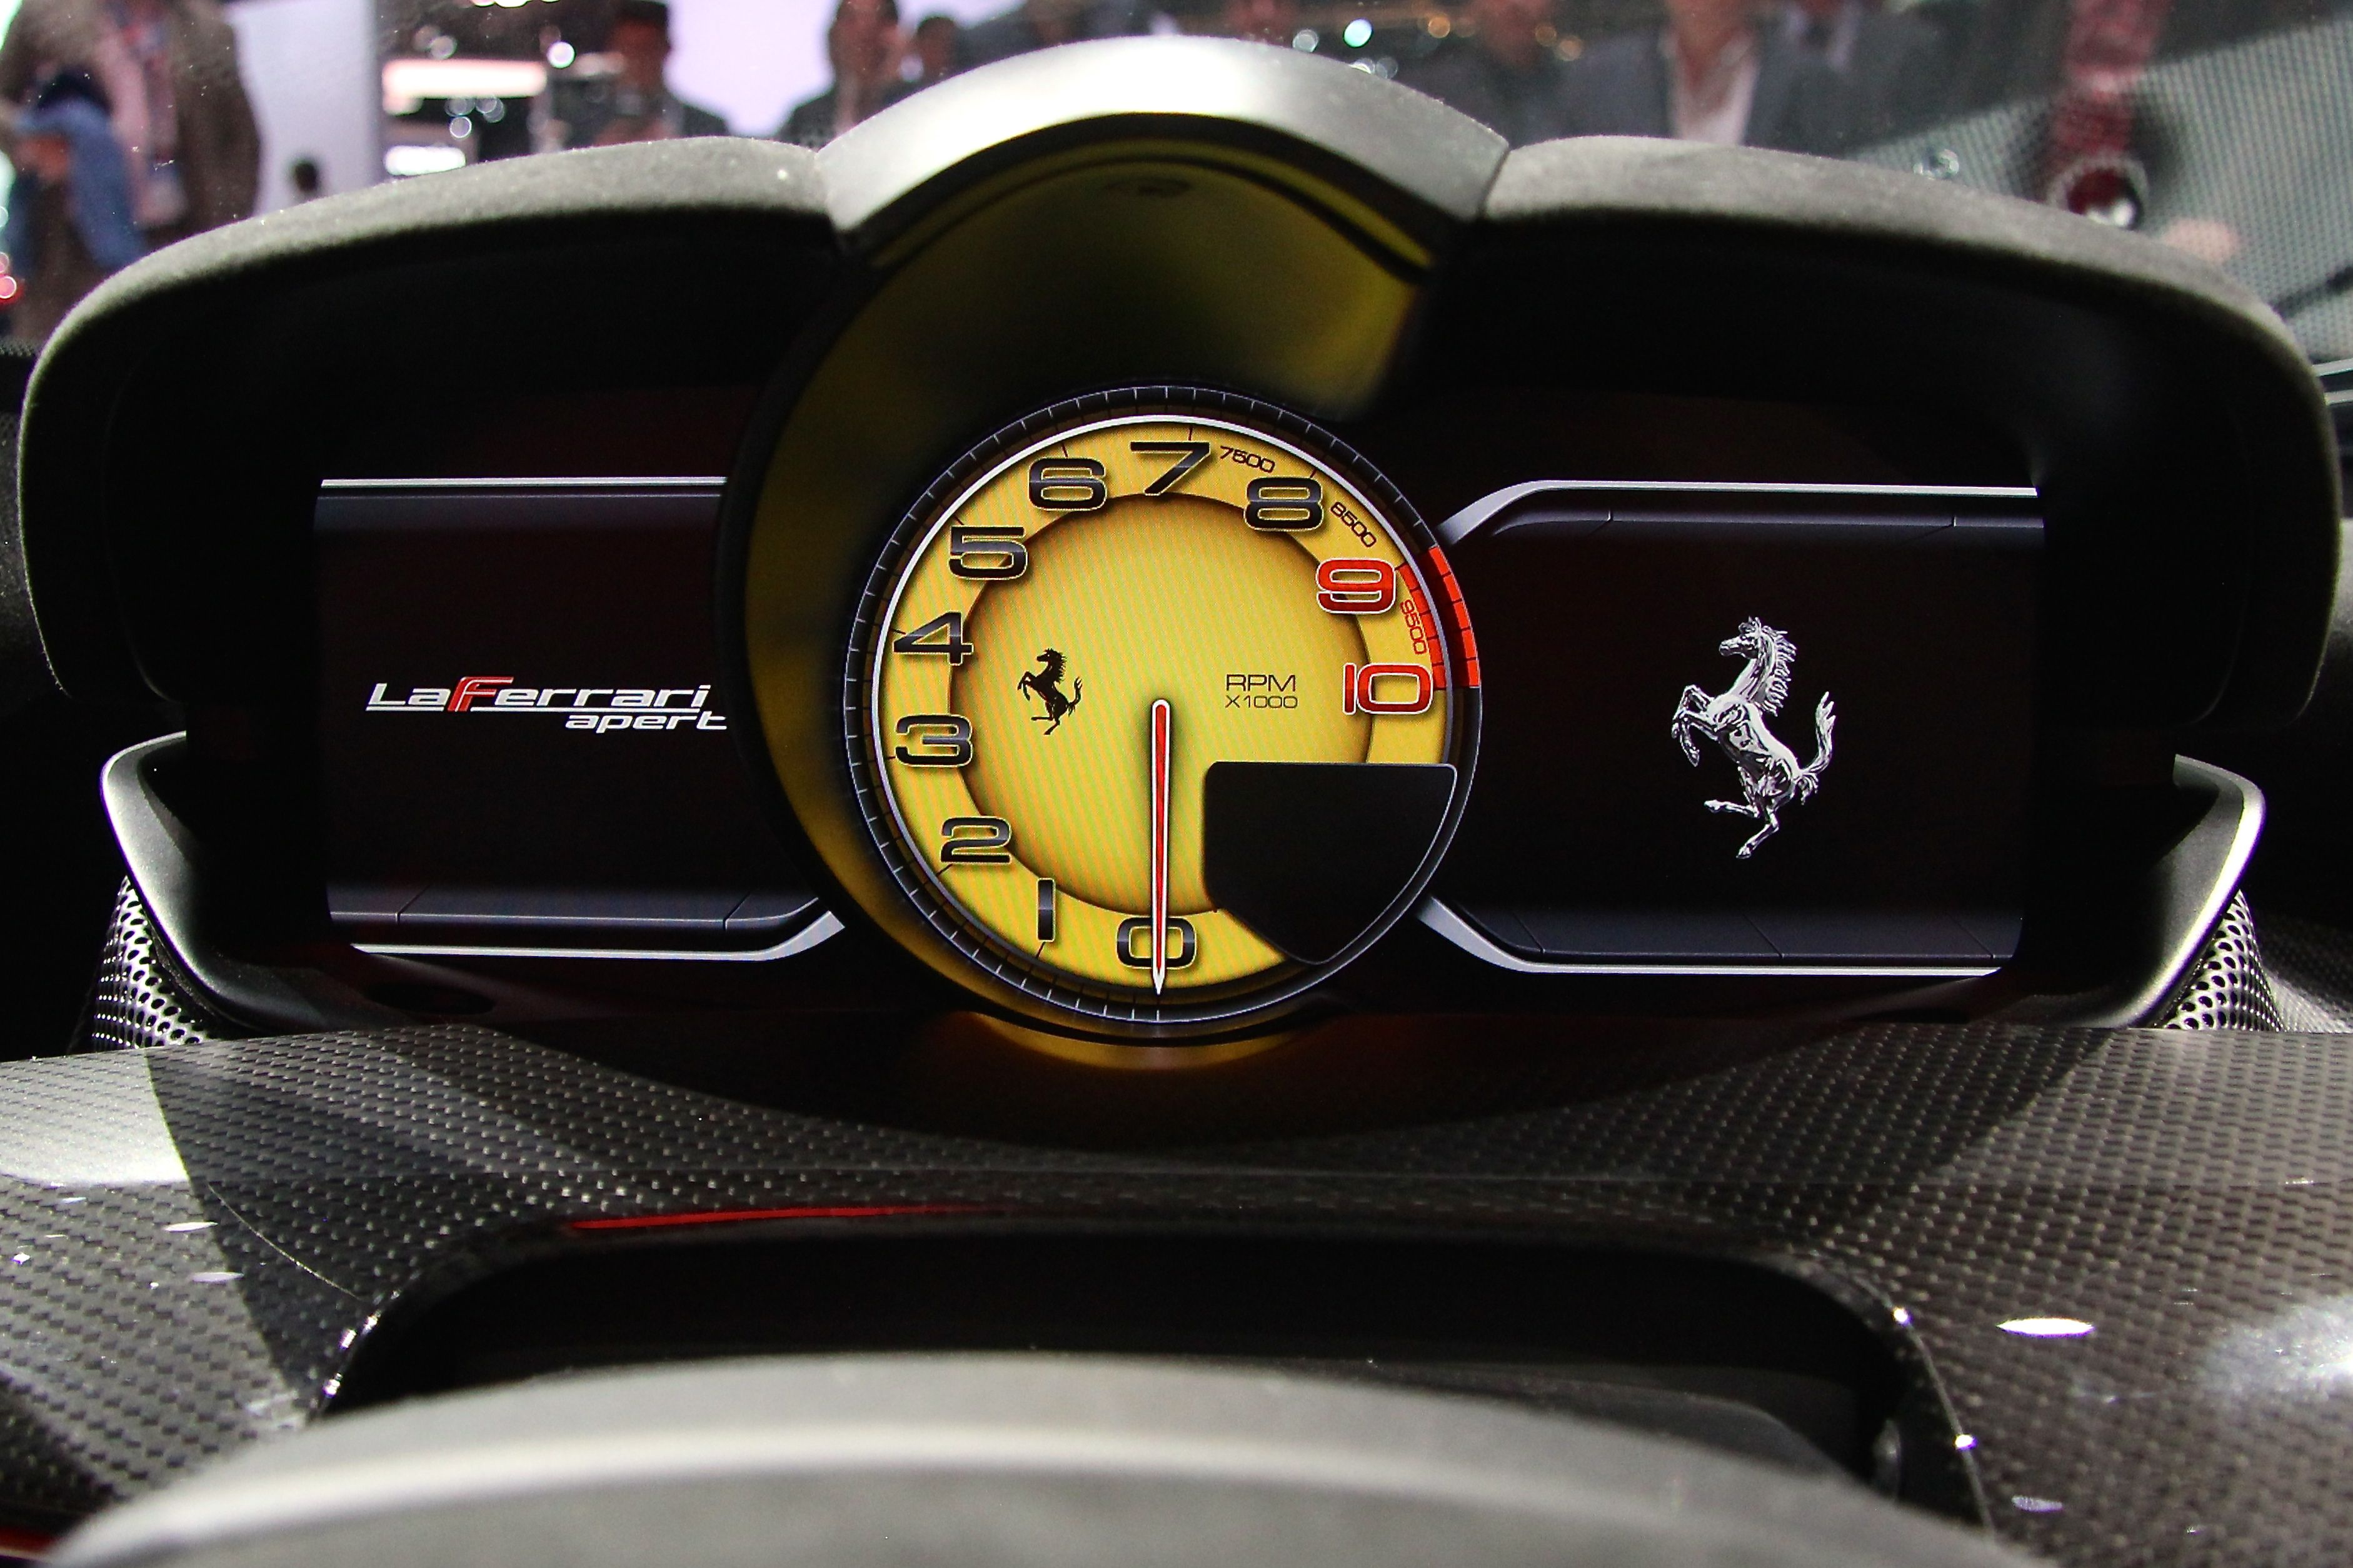 LaFerrari Aperta - 2016 - dashboard - 2016 - Mondial Auto - photo Ludo Ferrari